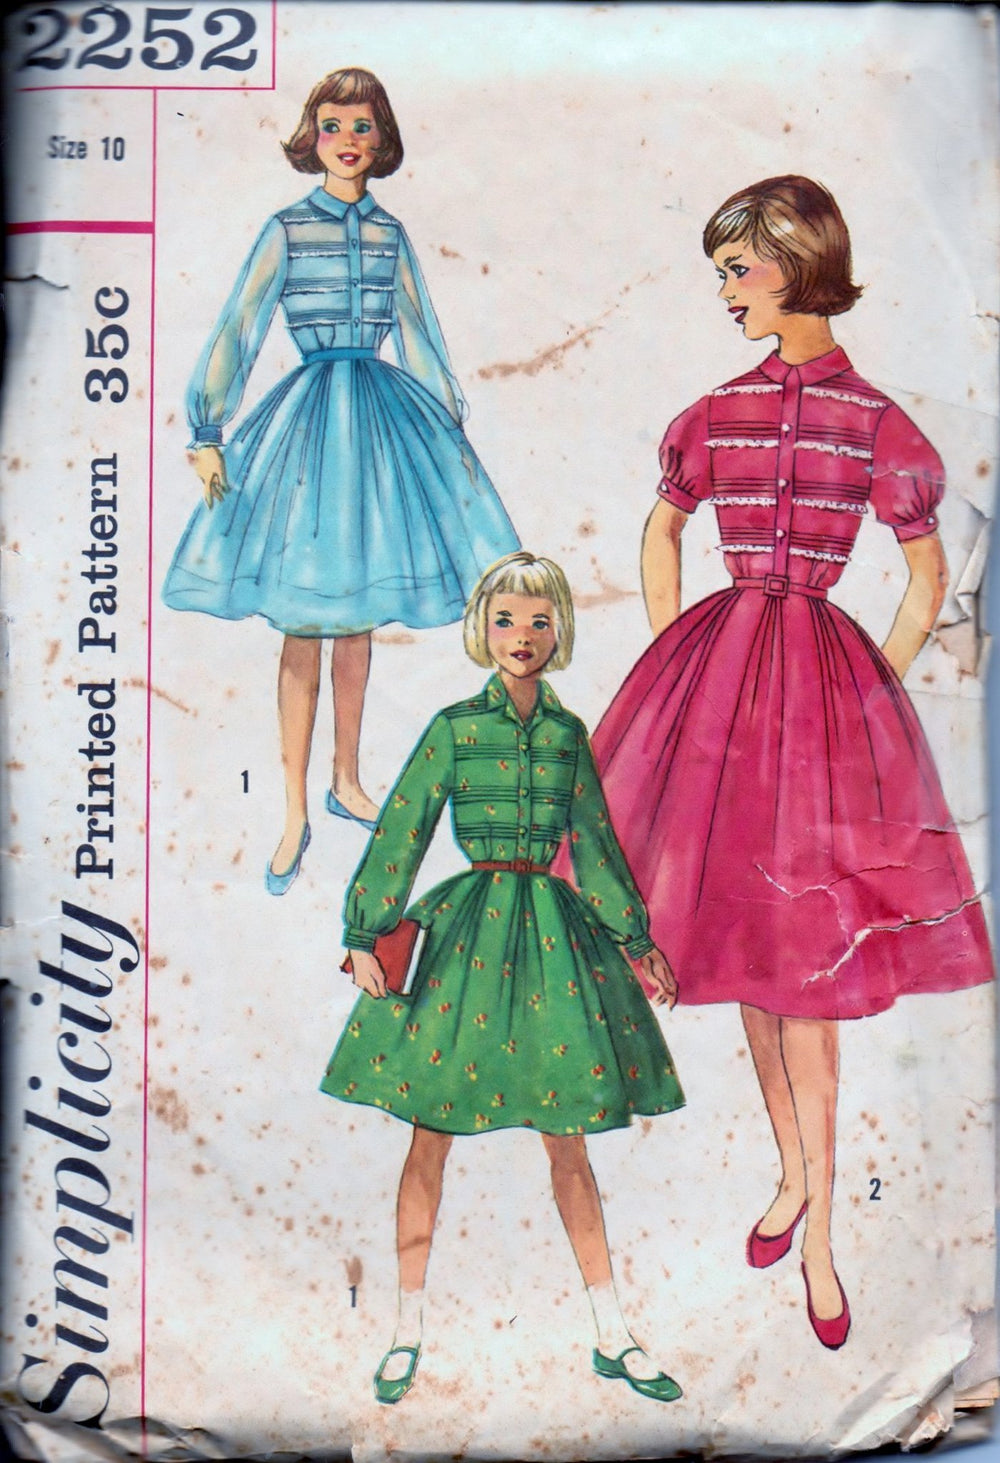 Simplicity 2252 Girls One-Piece Shirtwaist Dress Vintage 1950's Sewing Pattern - VintageStitching - Vintage Sewing Patterns